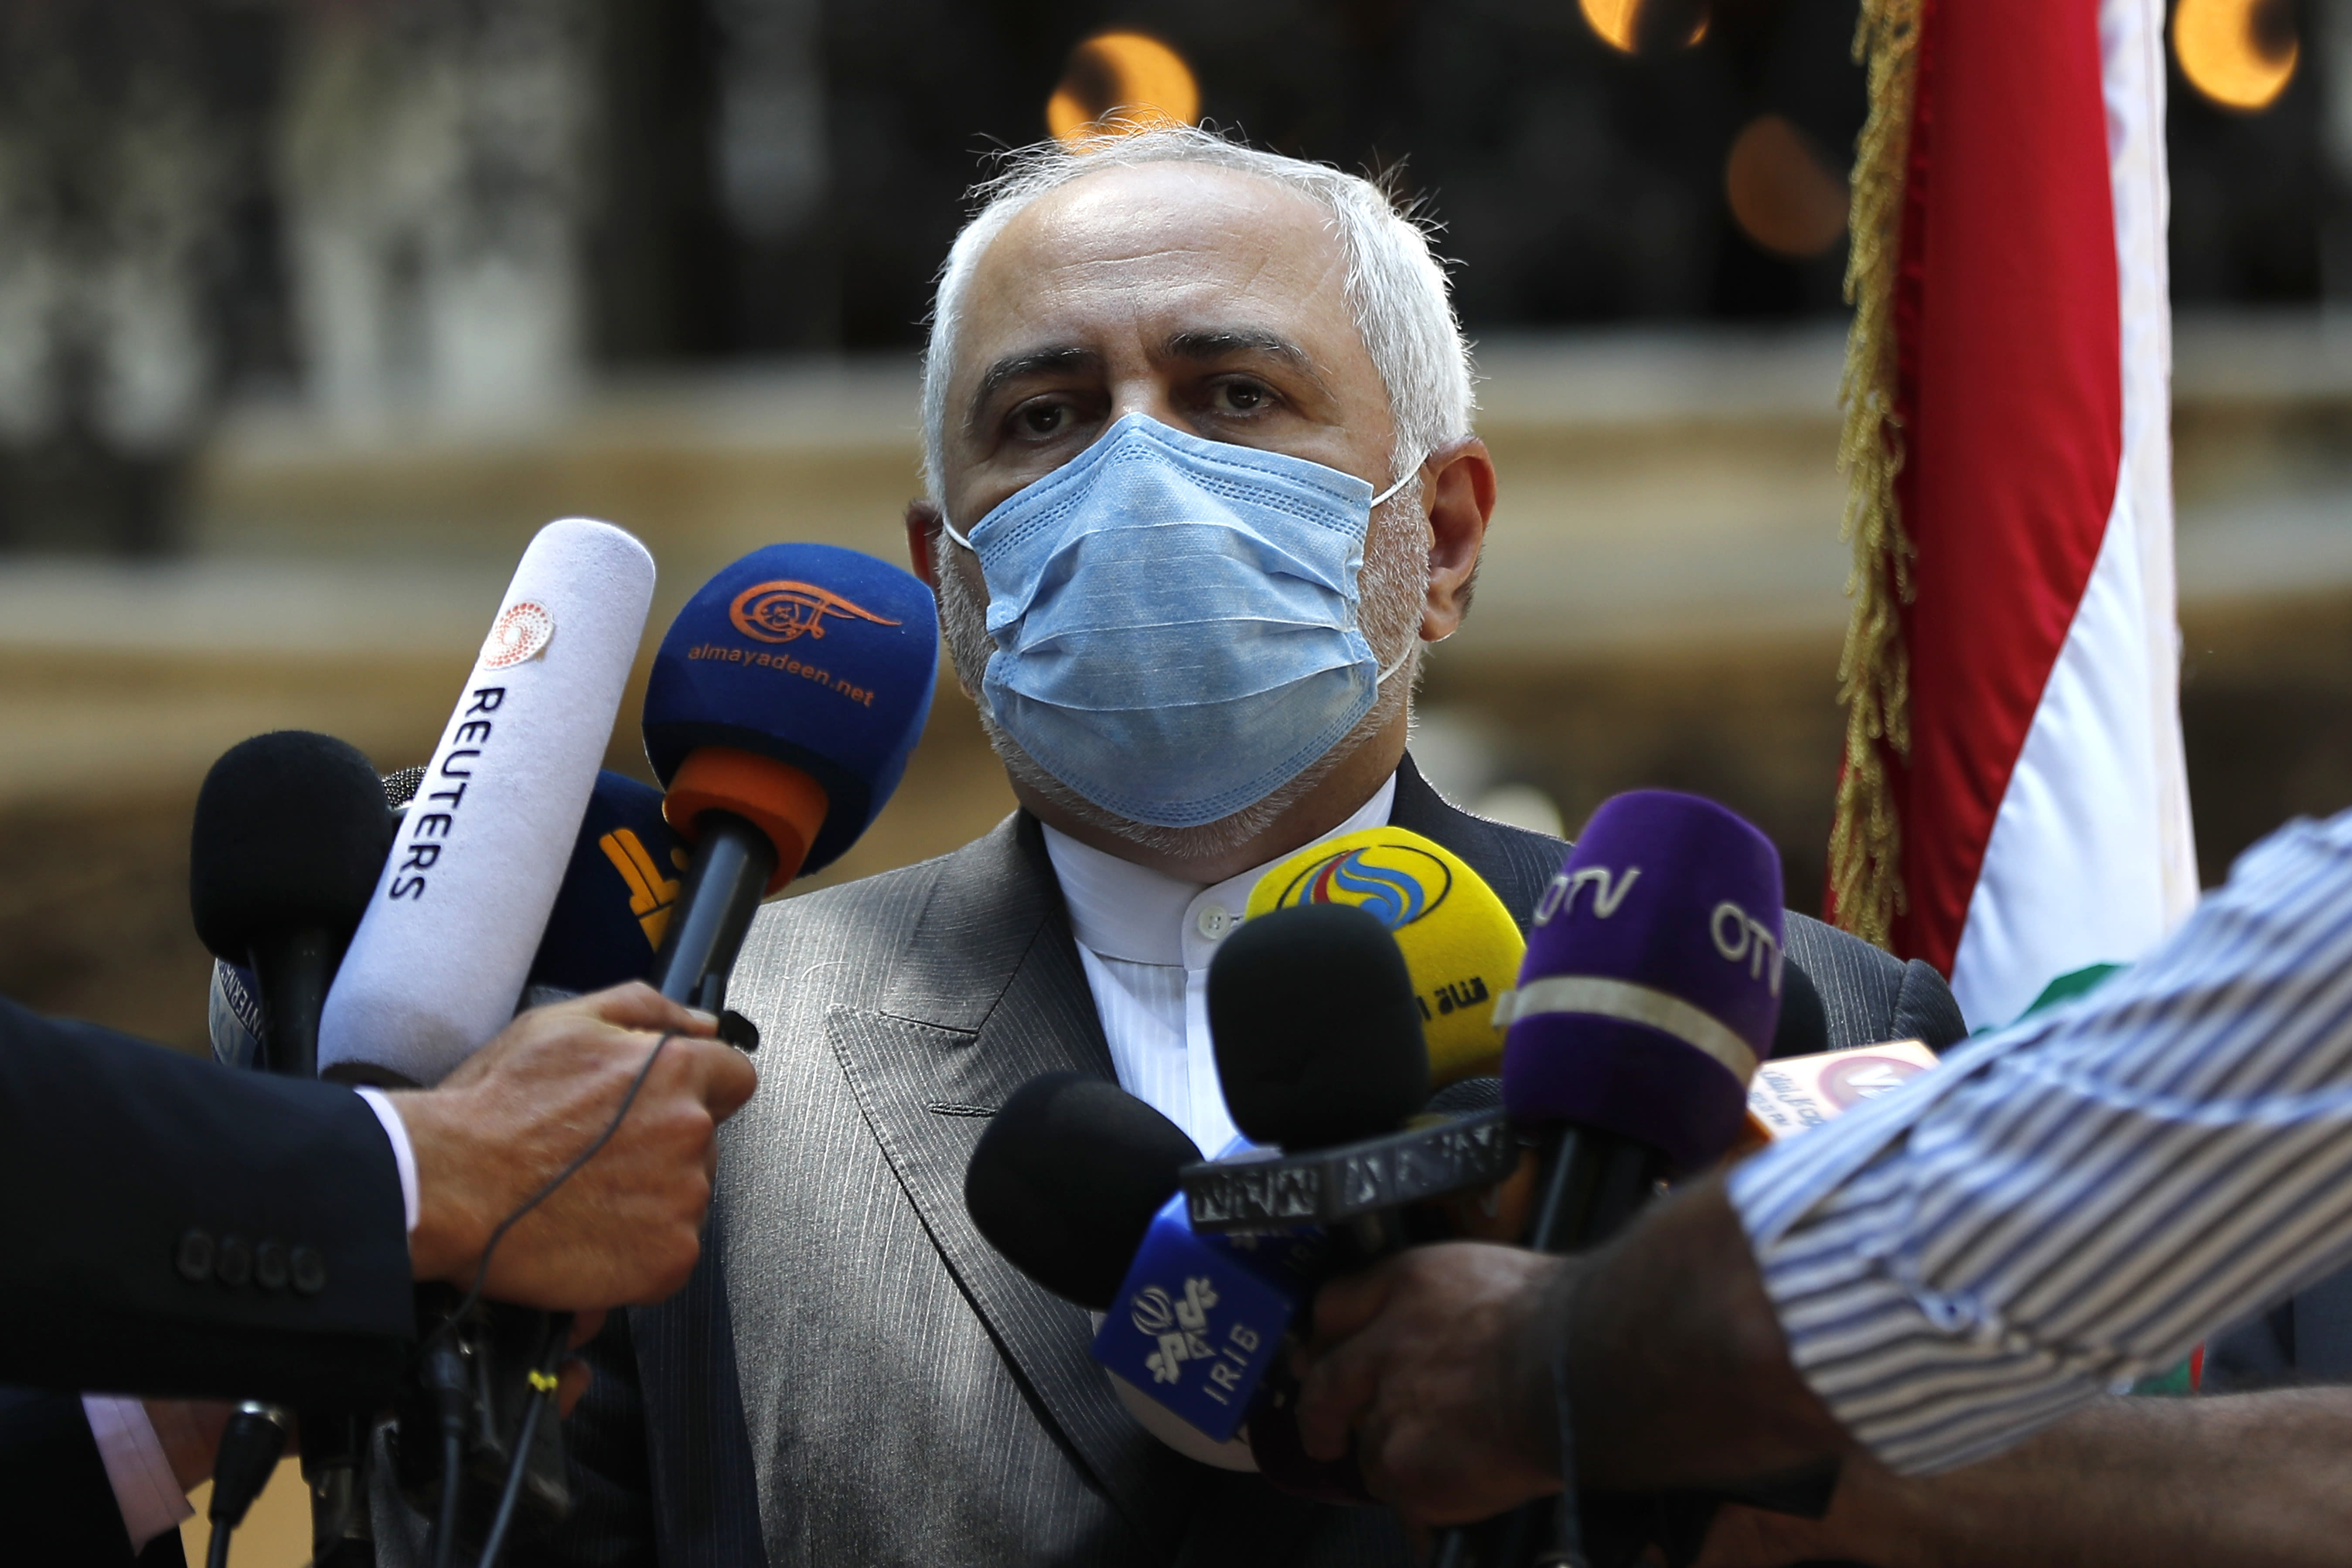 Iranian Foreign Minister Mohammad Javad Zarif speaks outside the Lebanese Foreign Ministry which damaged by last week's explosion that hit the seaport of Beirut, Lebanon, Friday, Aug. 14, 2020. (AP Photo/Hussein Malla)